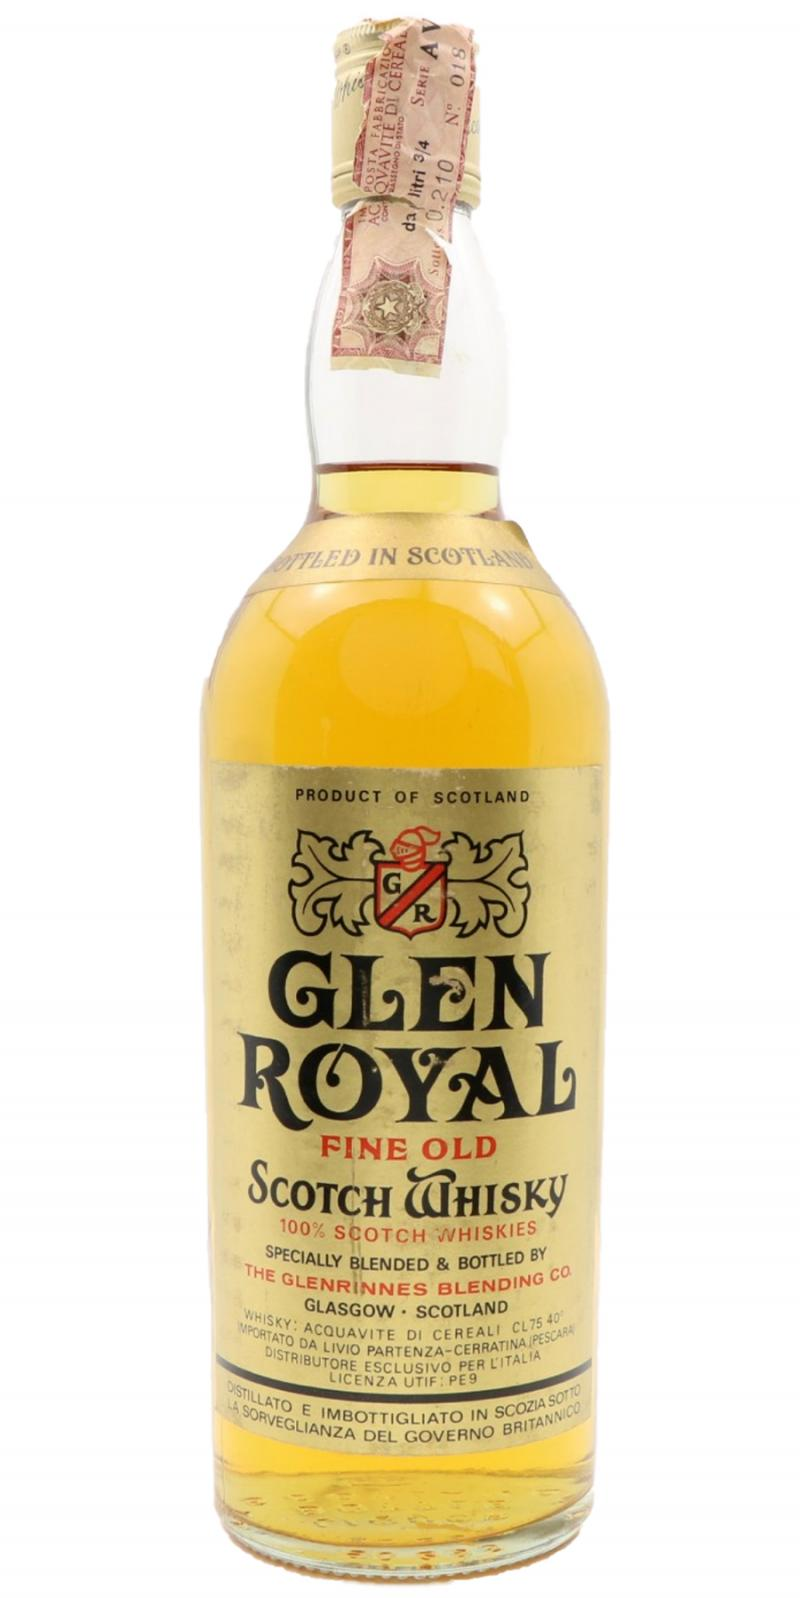 Glen Royal Fine Old Scotch Whisky